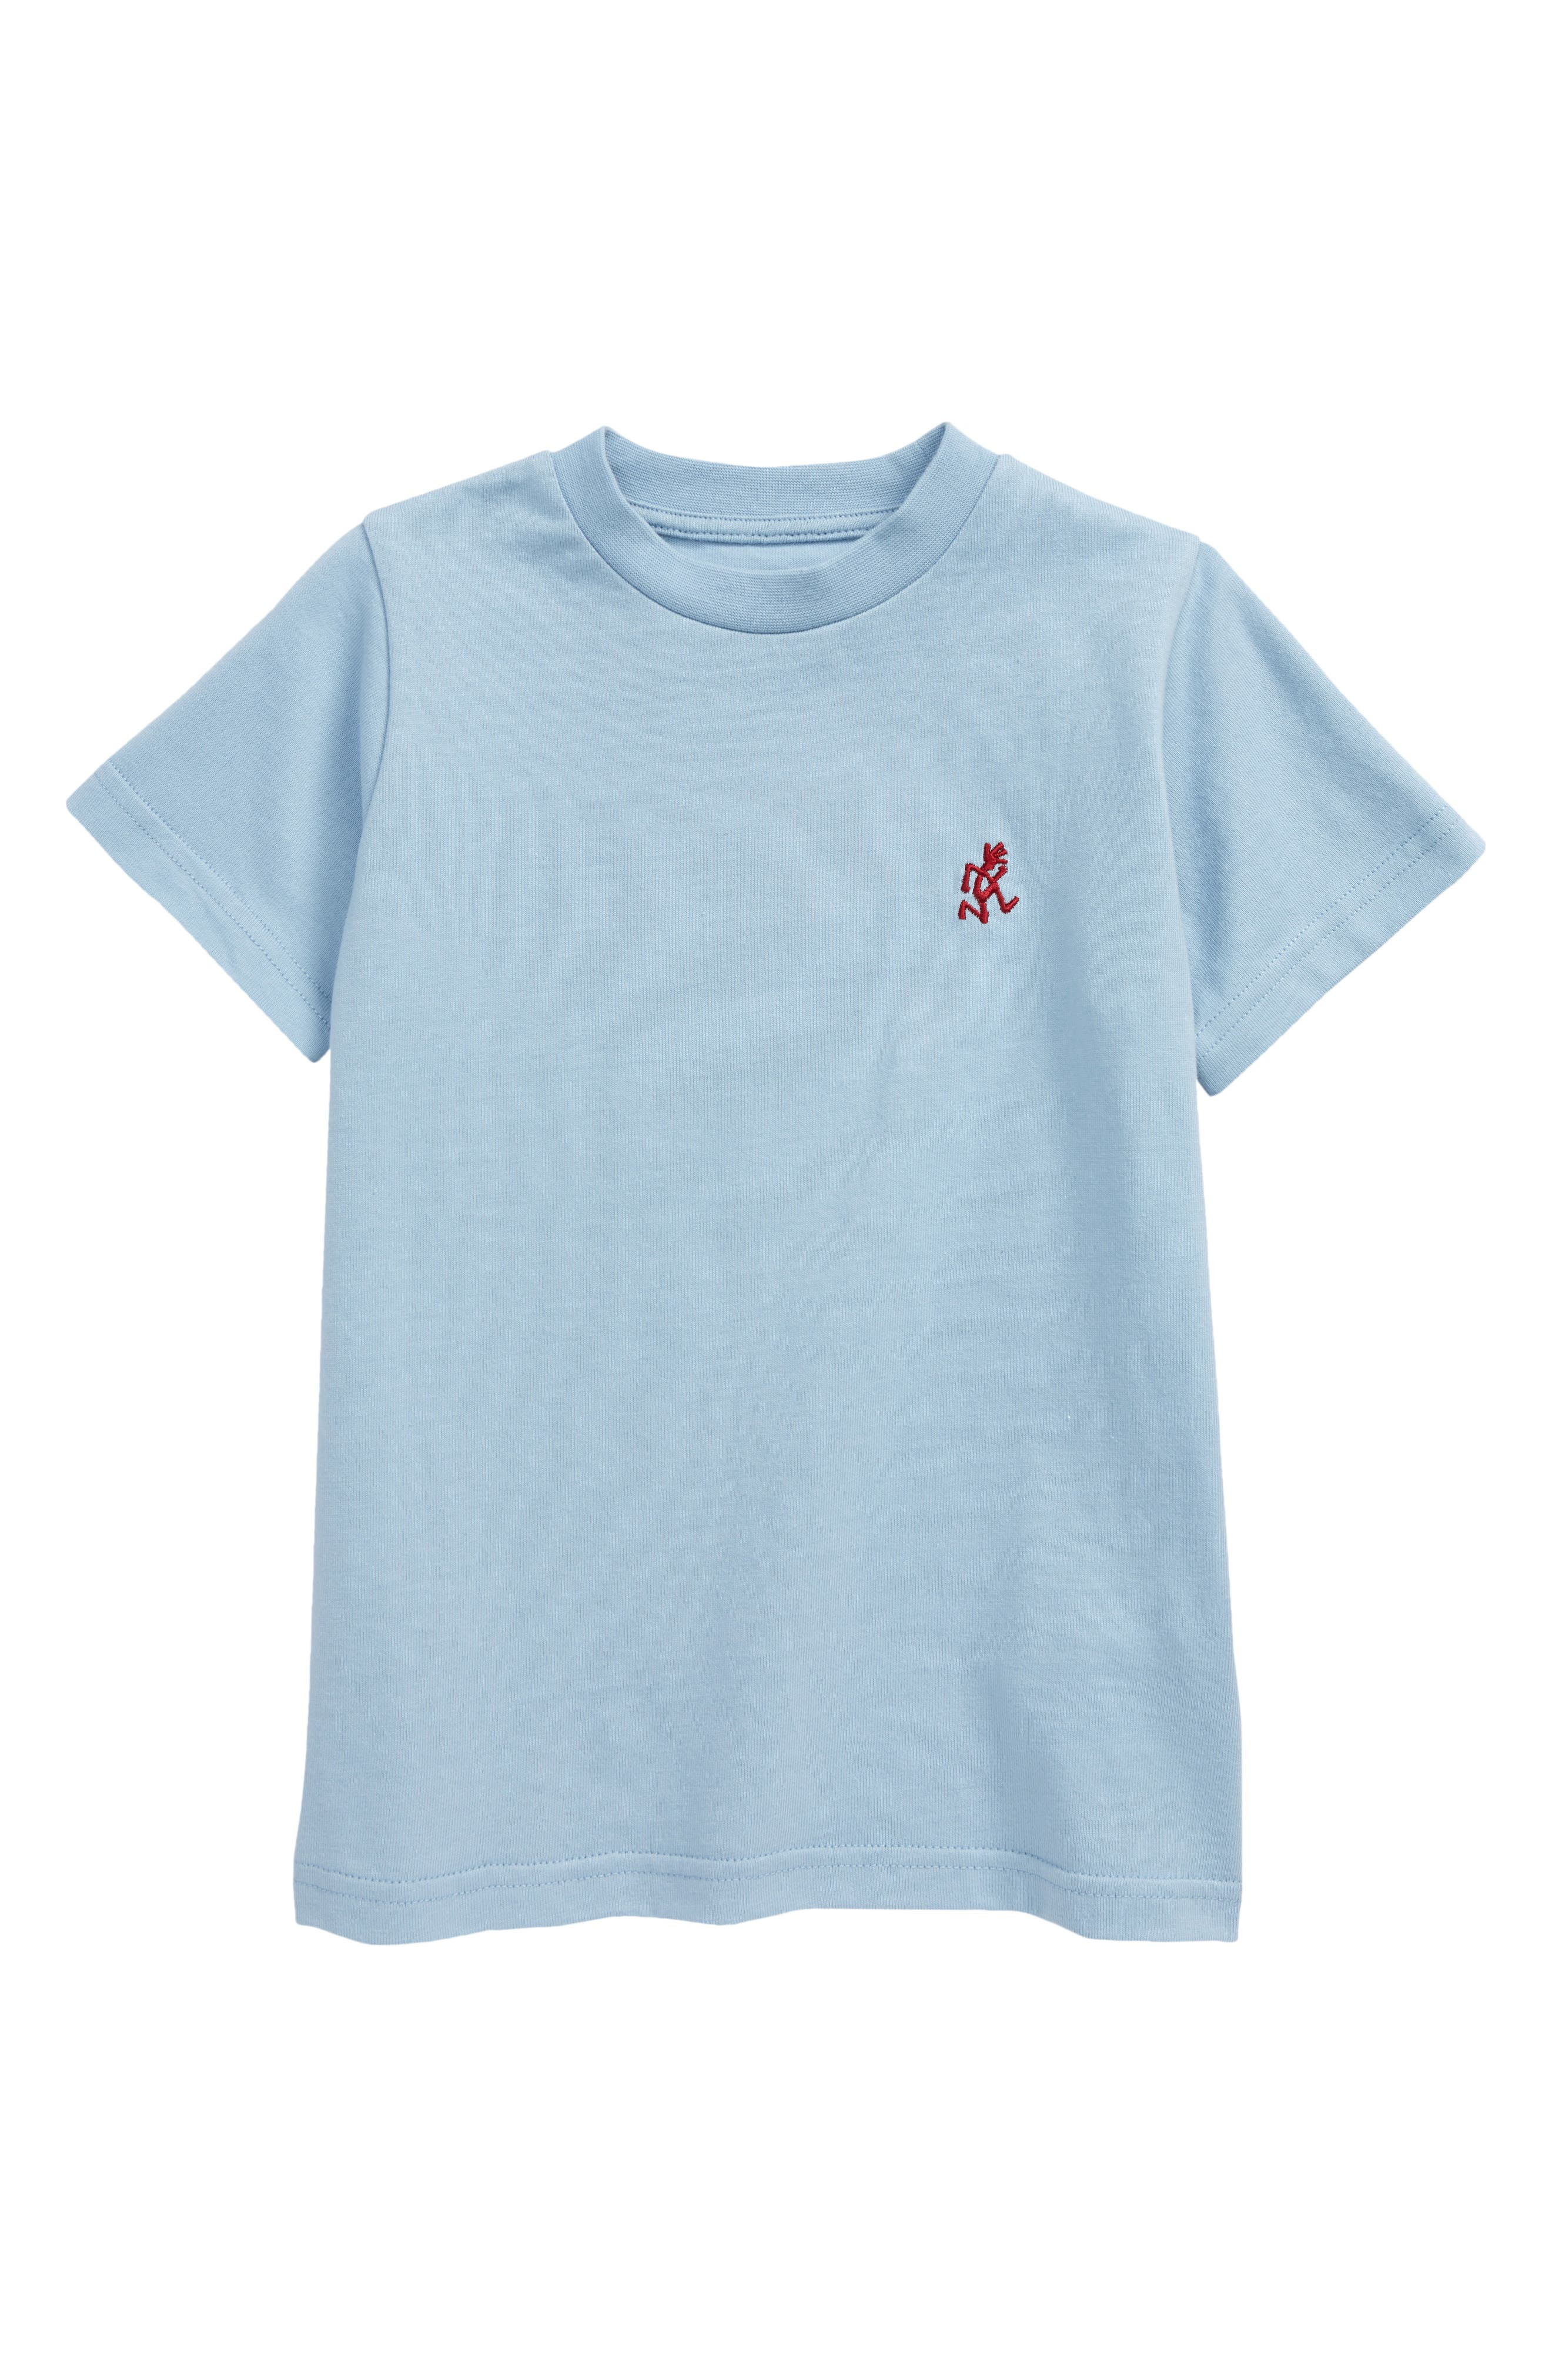 Kids' One Point T-Shirt